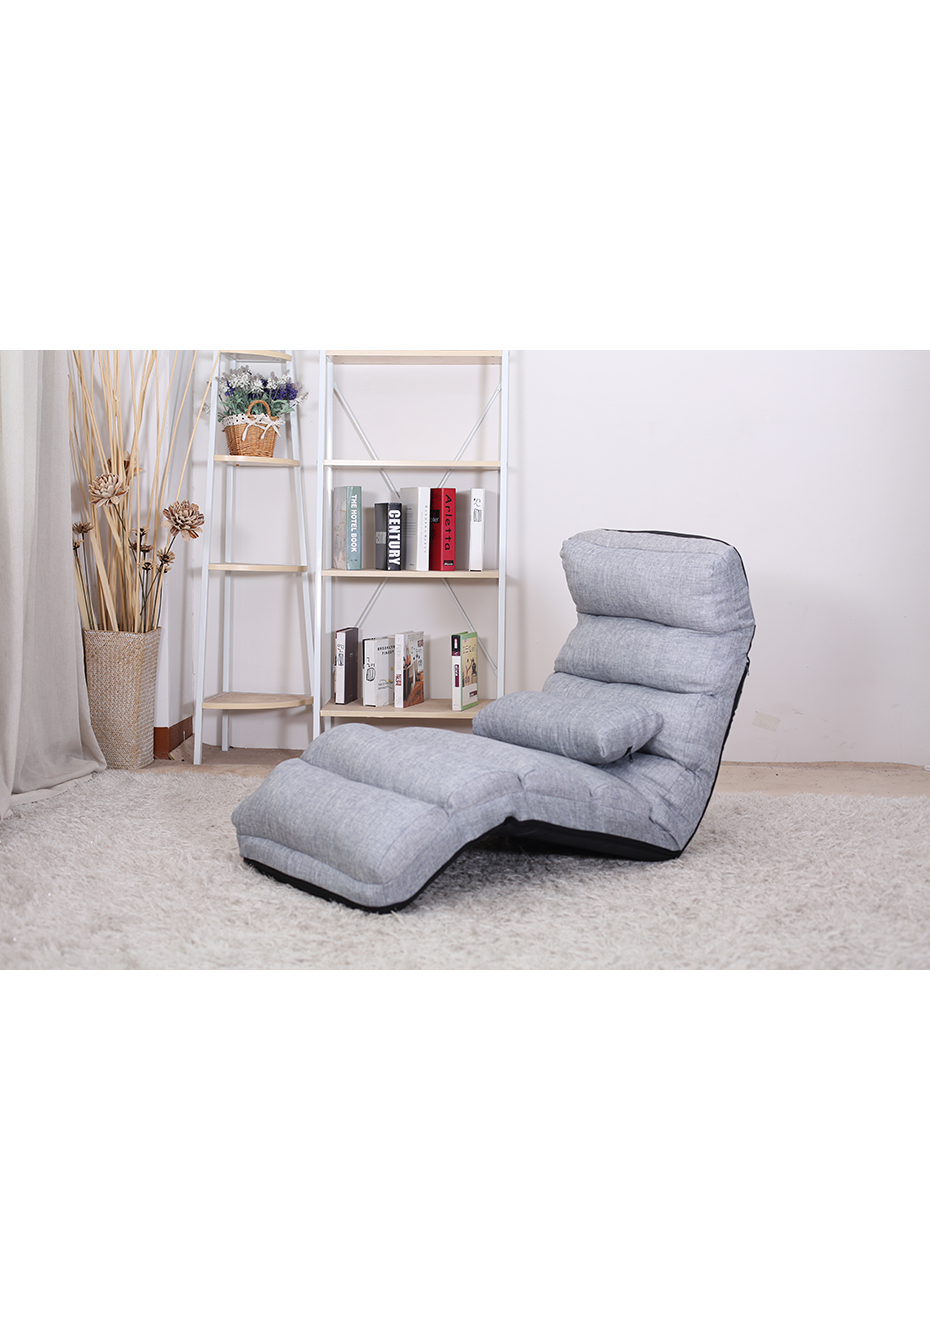 Floor Lounge Chair Floor Folding Sofa Lounge Chair W Pillow Gray